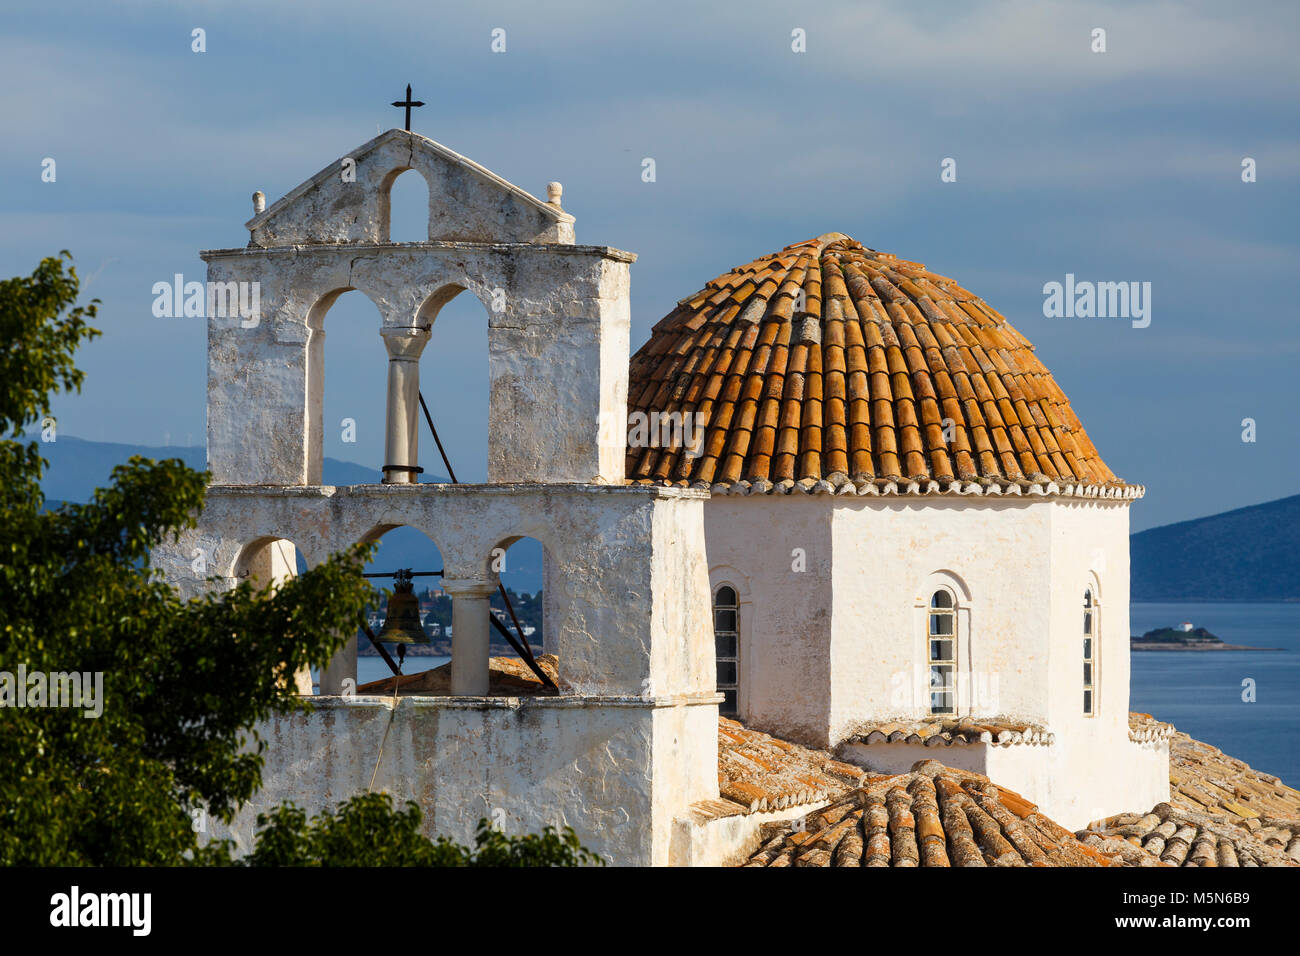 One of the main churches in Spetses village, Greece. - Stock Image